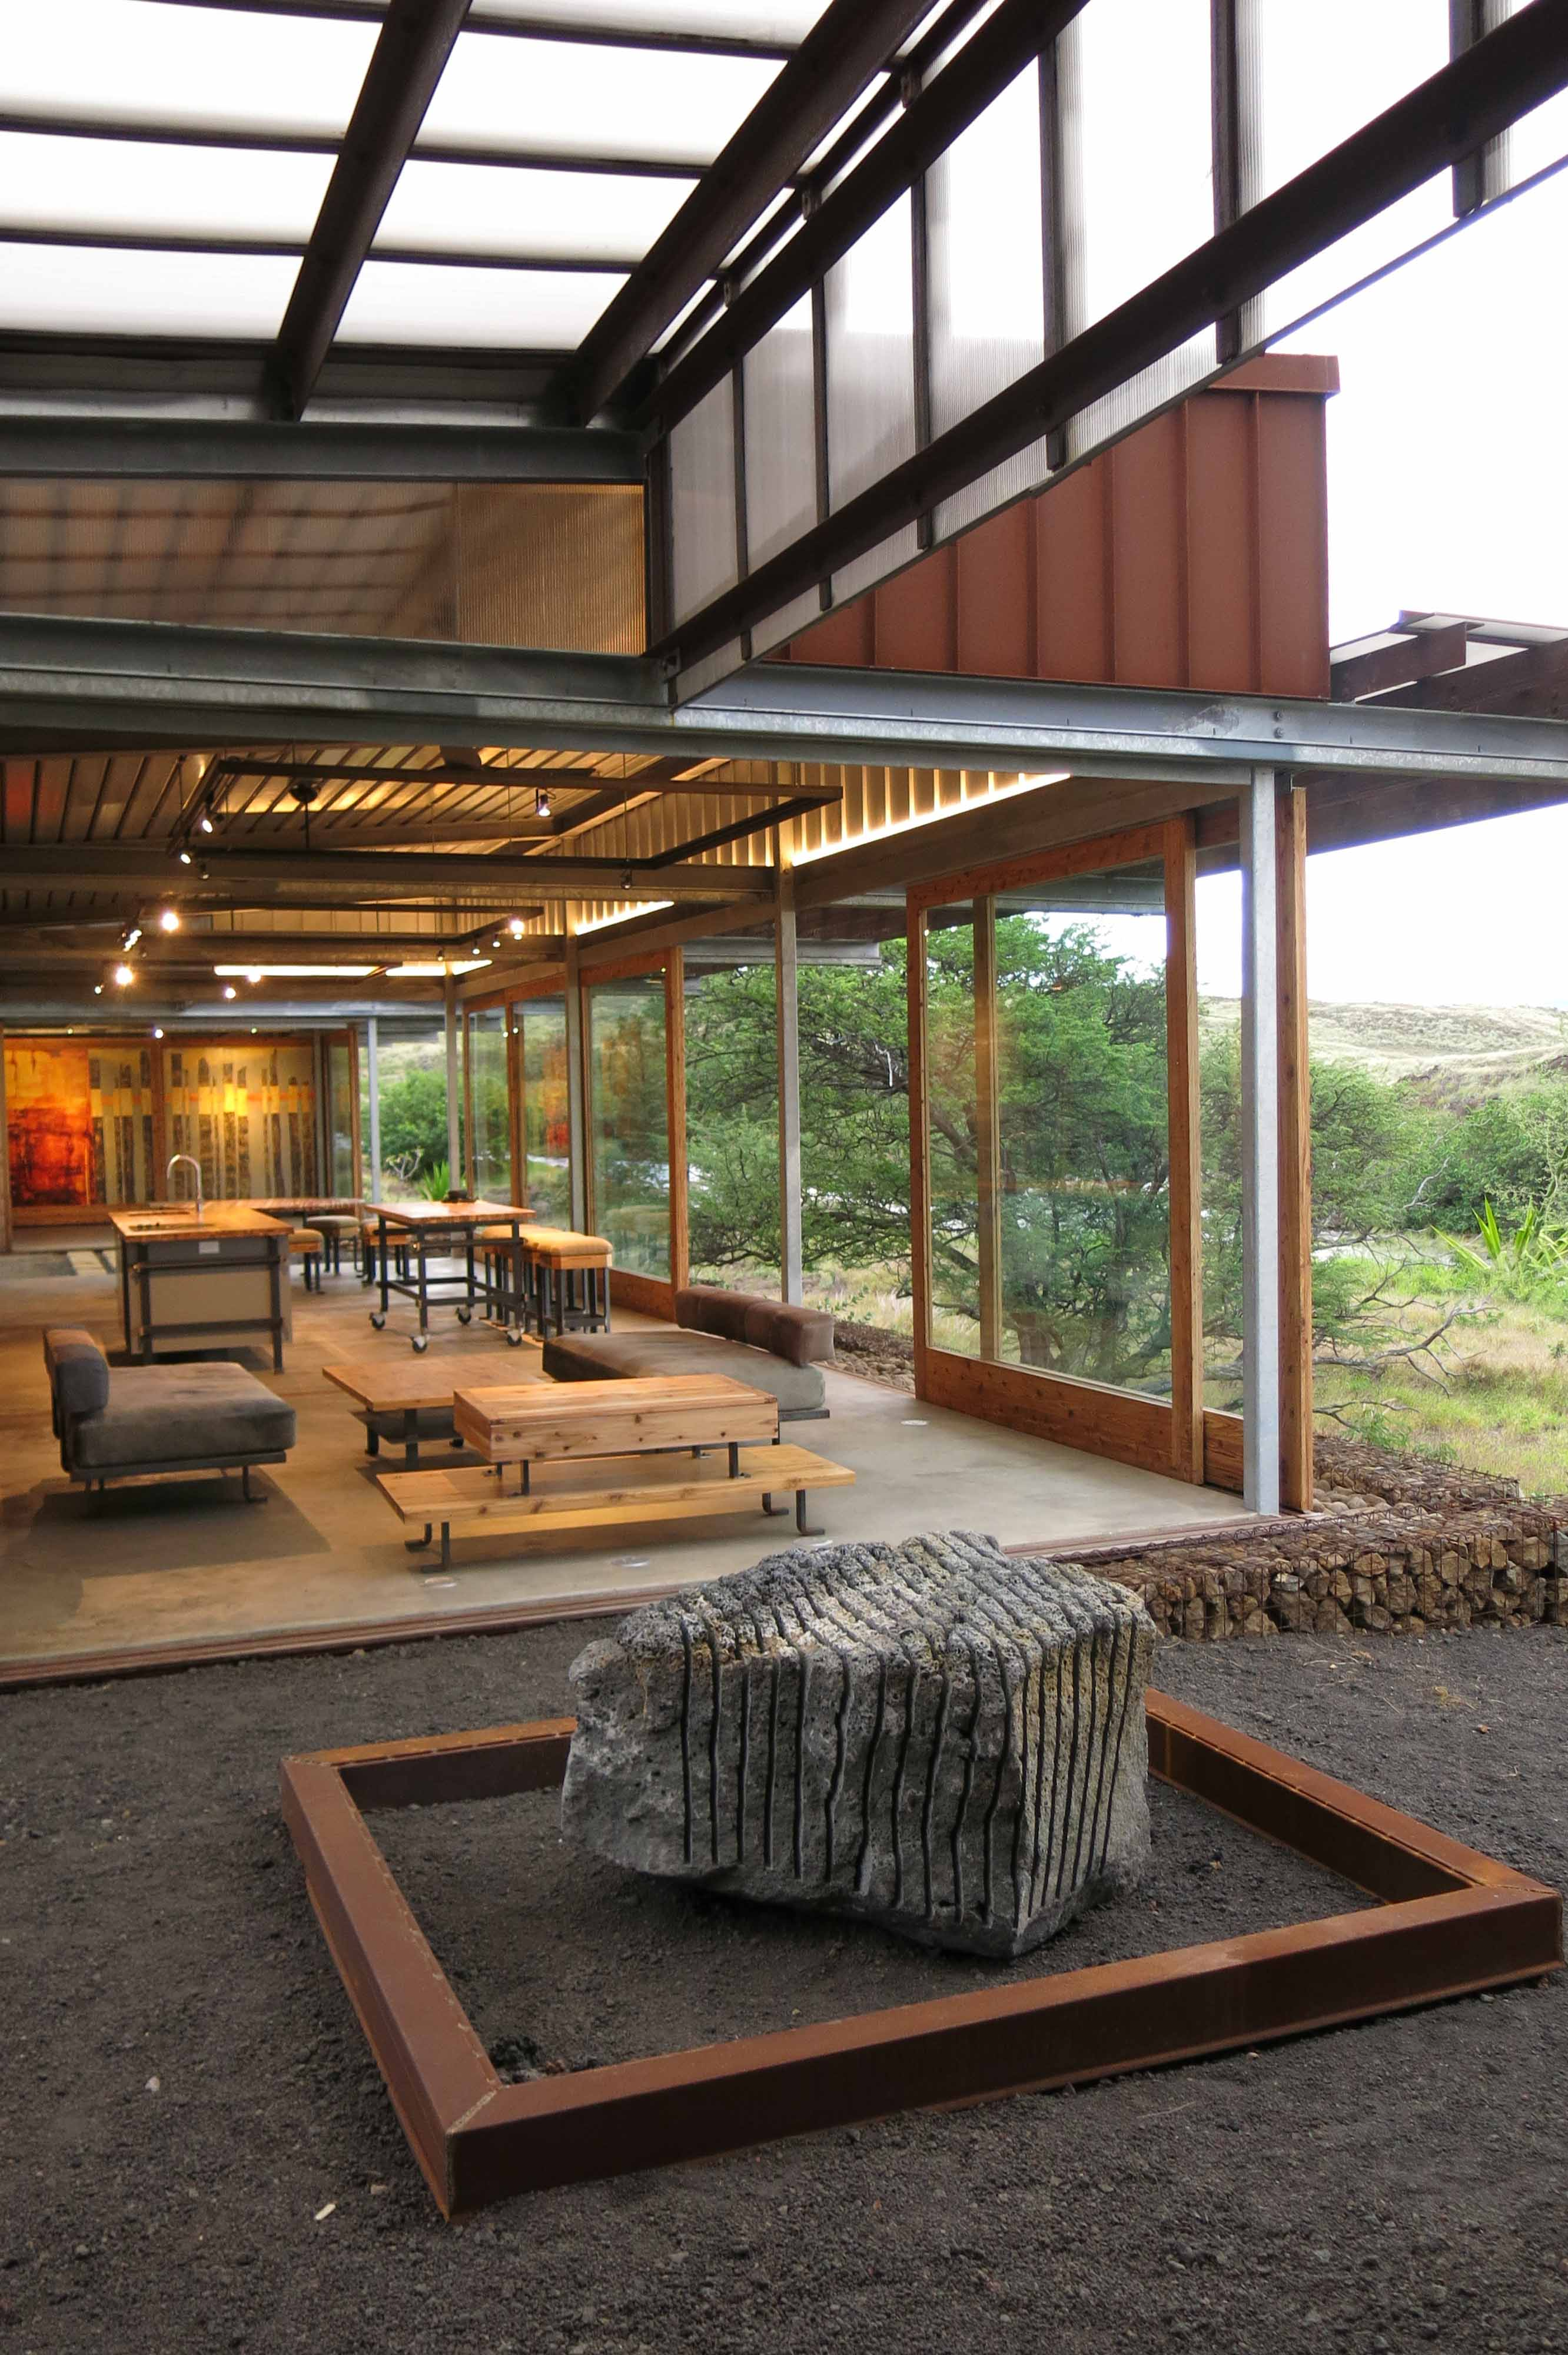 With sliding wall/window panels open, the indoor spaces can be opened to the surrounding landscape. John Russell